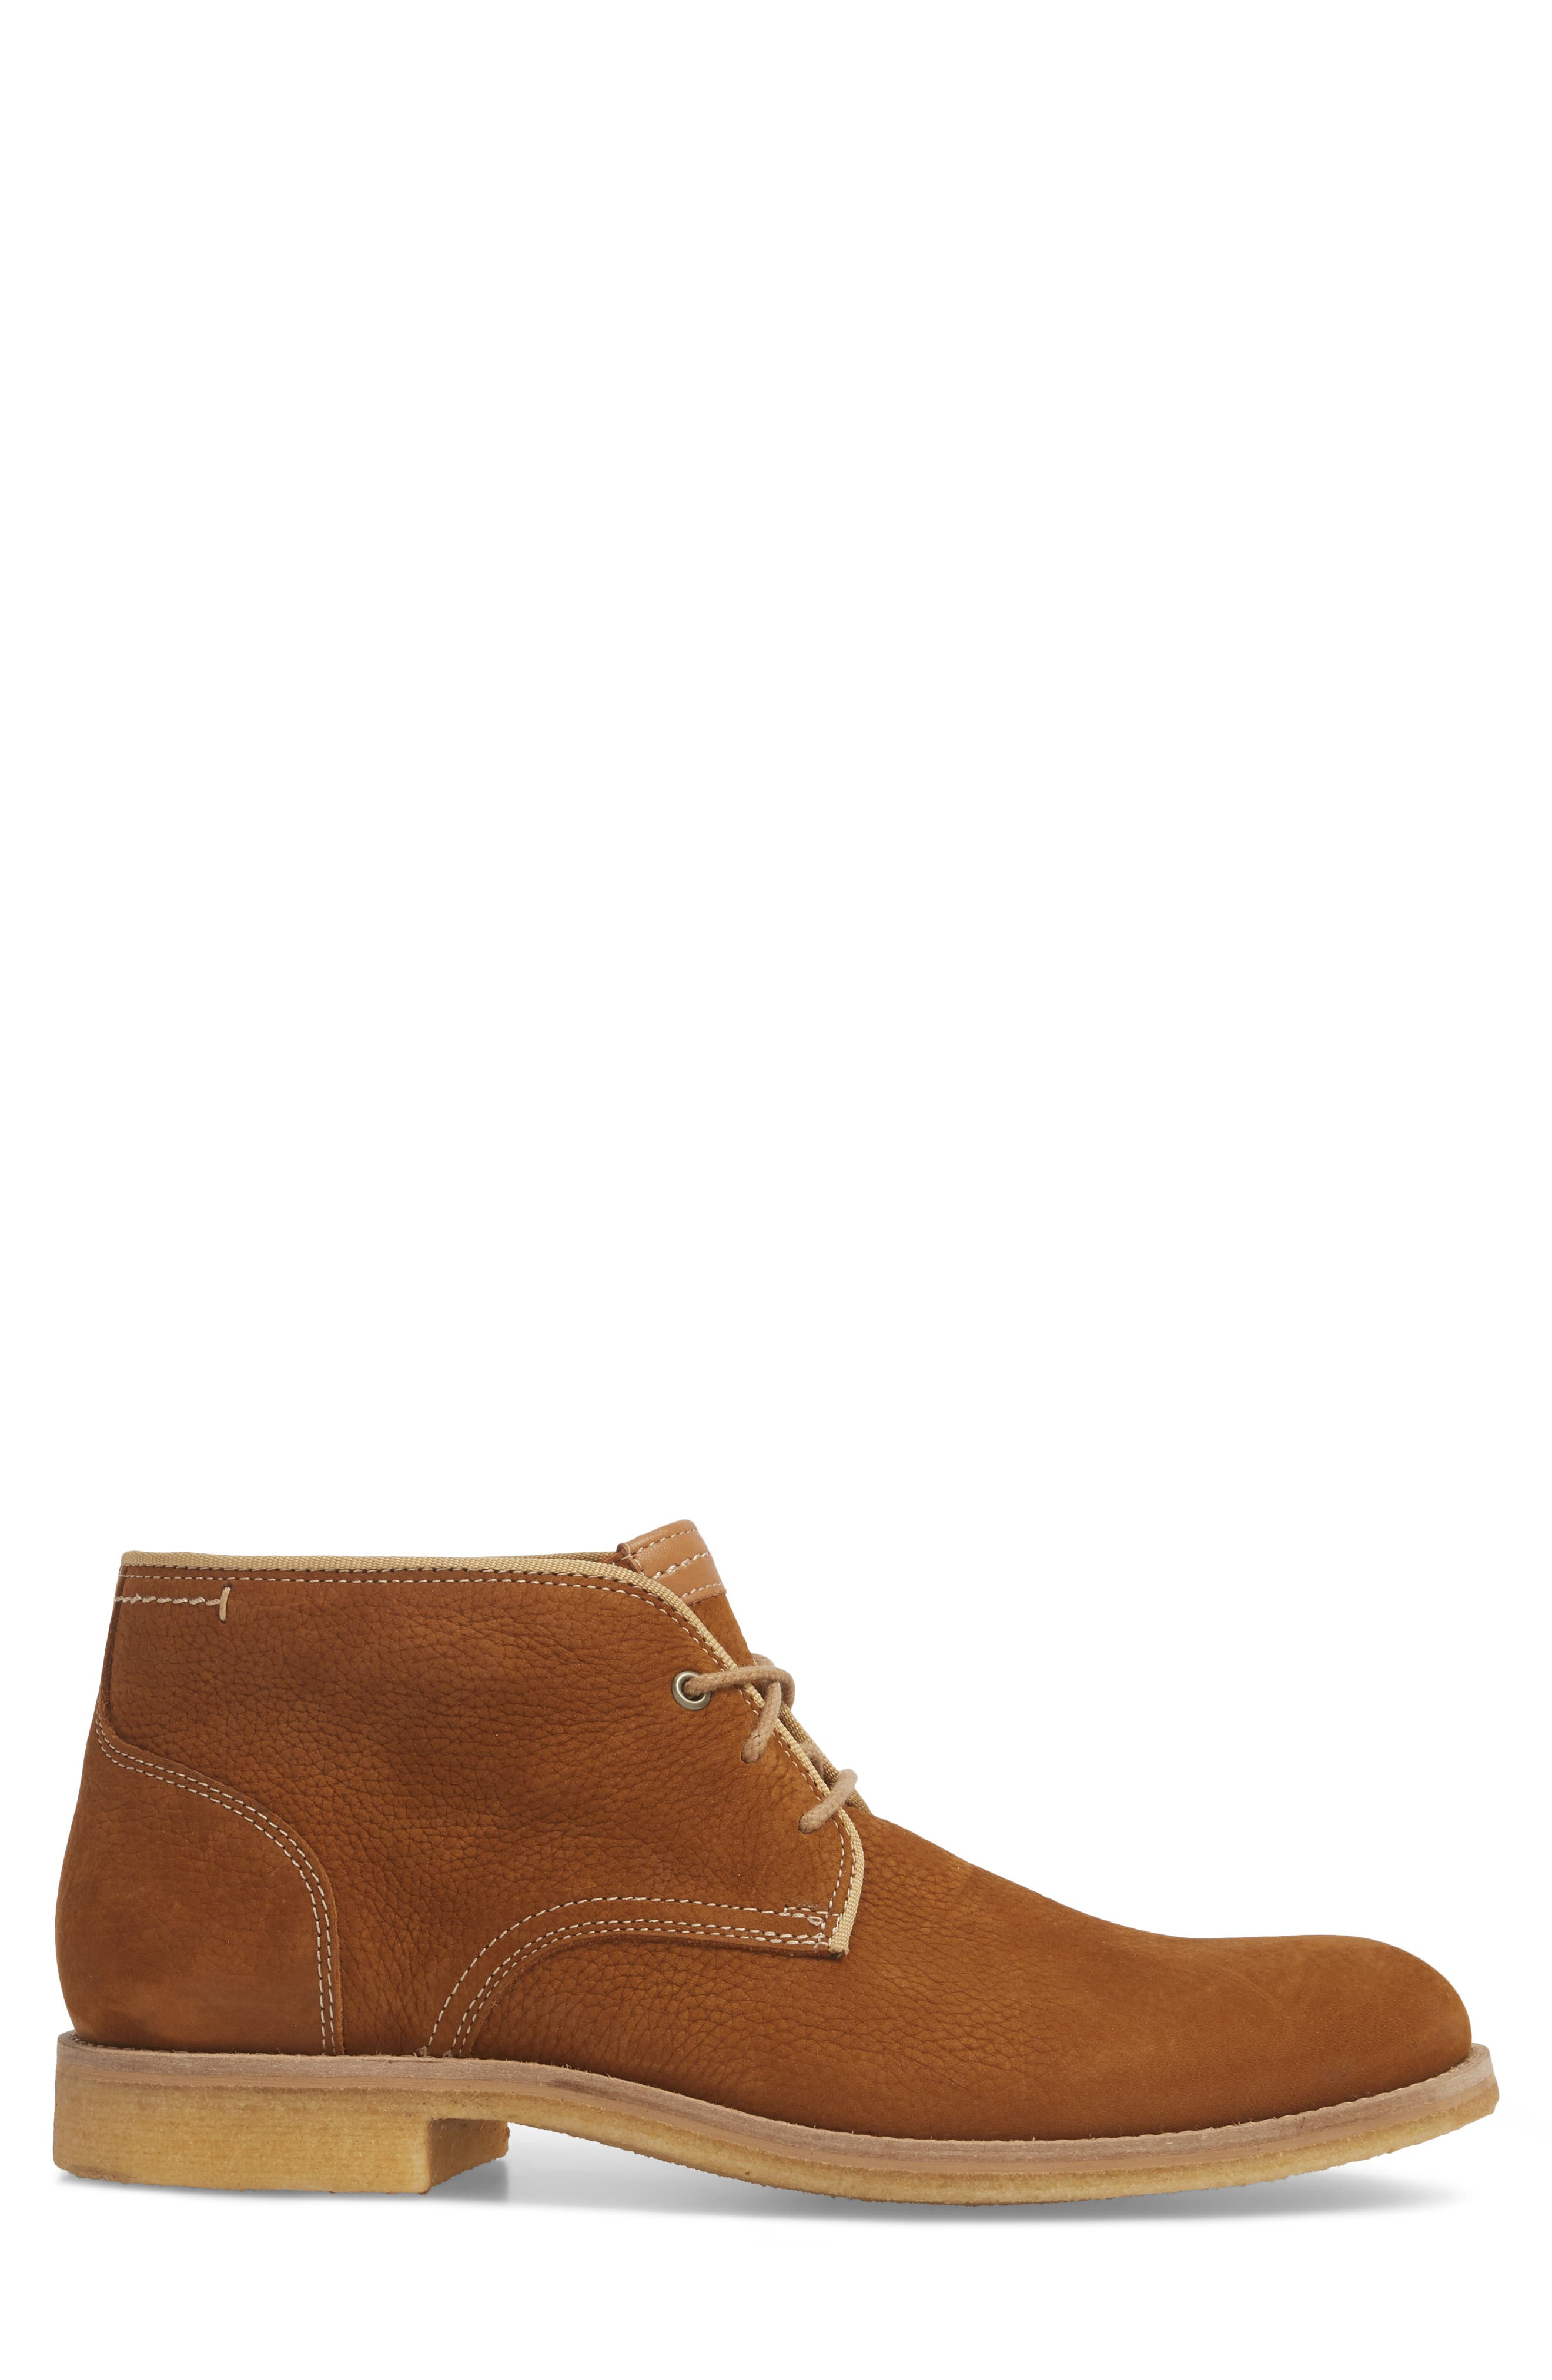 Howell Water Resistant Chukka Boot,                             Alternate thumbnail 3, color,                             240